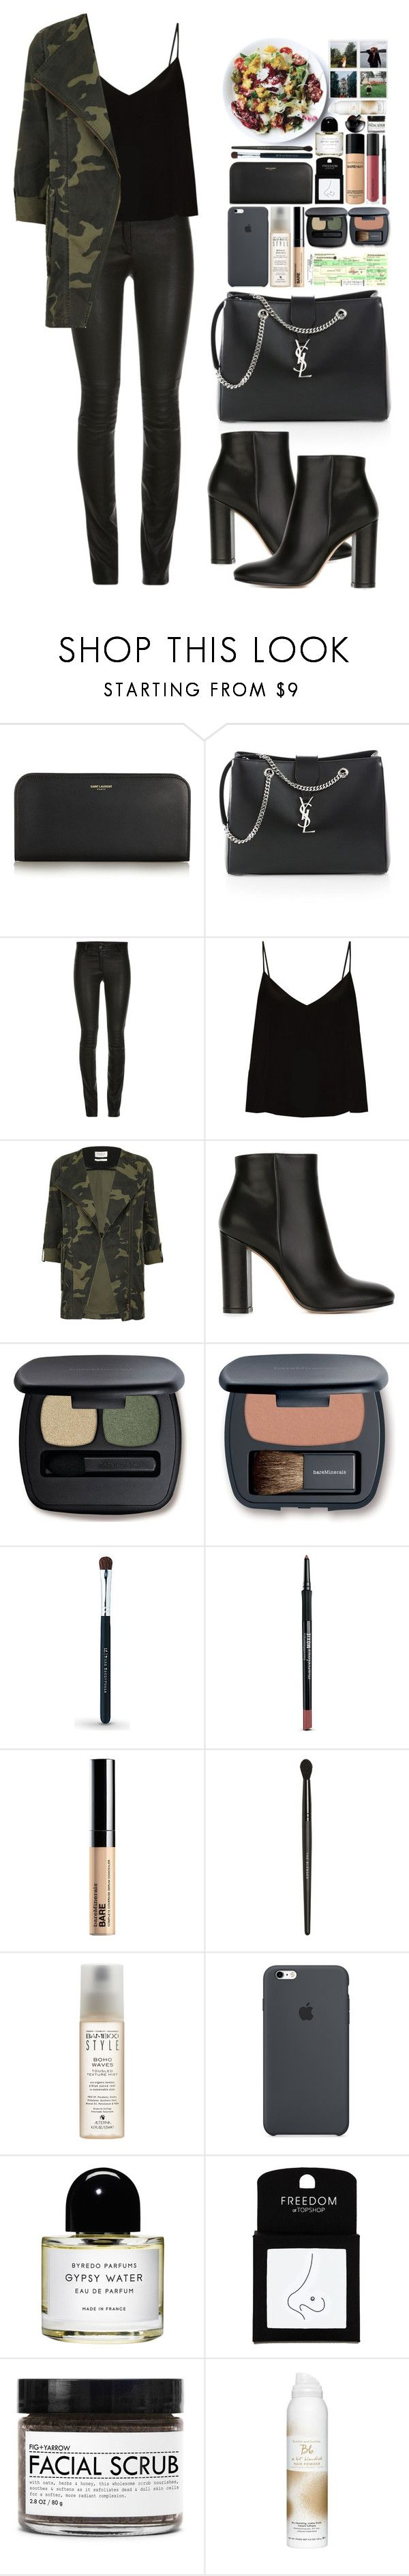 """""""Unpredictable"""" by vanessasimao ❤ liked on Polyvore featuring Yves Saint Laurent, ElleSD, Raey, Parka London, Gianvito Rossi, Bare Escentuals, Alterna, Byredo, Topshop and Fig+Yarrow"""